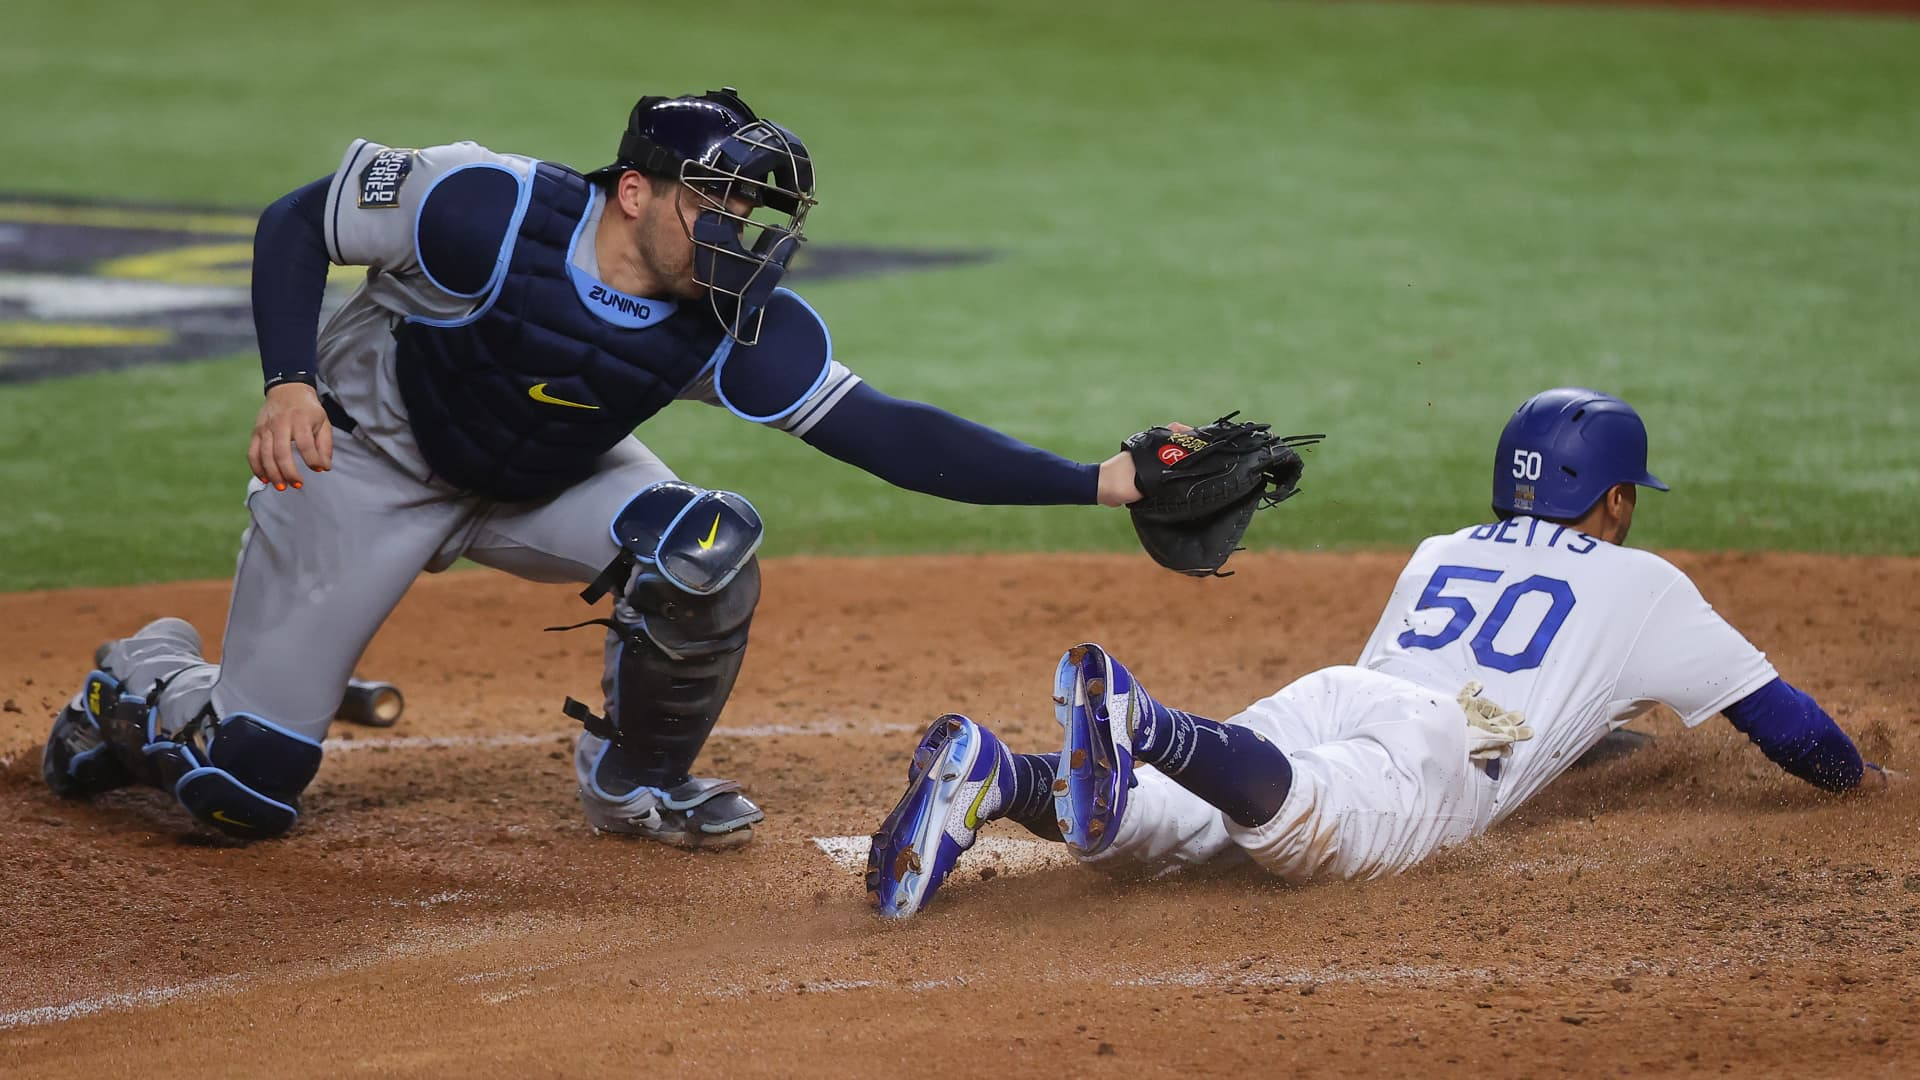 Mookie Betts #50 of the Los Angeles Dodgers slides in safely past Mike Zunino #10 of the Tampa Bay Rays to score a run on a fielders choice hit by Corey Seager (not pictured) during the sixth inning in Game Six of the 2020 MLB World Series at Globe Life Field on October 27, 2020 in Arlington, Texas.